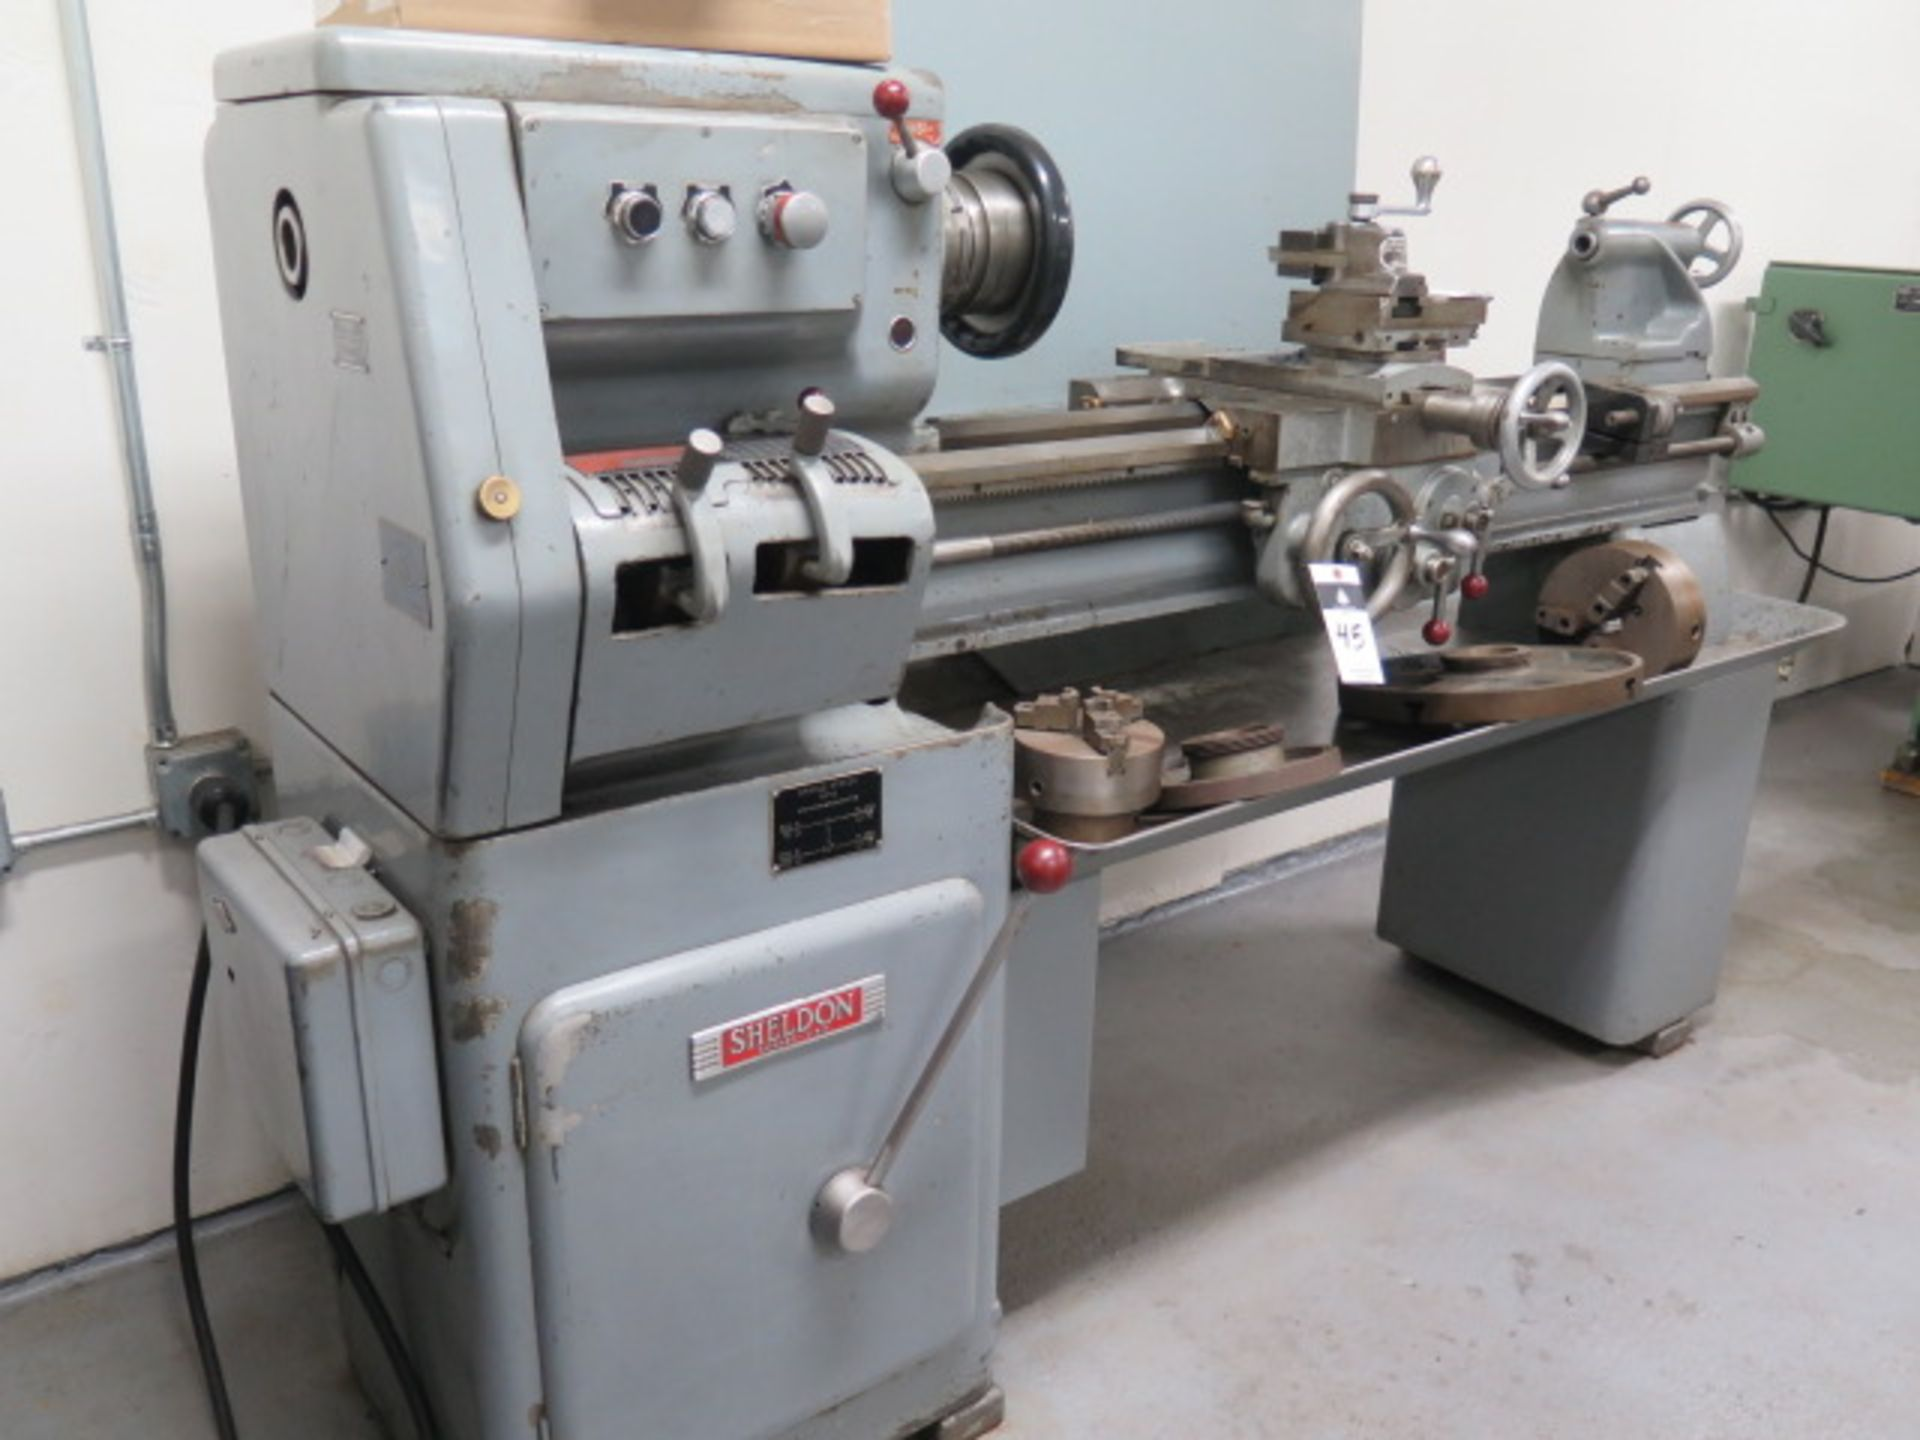 "Lot 45 - Sheldon GR-72-P 15"" x 42"" Lathe s/n GR-25883 w/ 45-1250 RPM, Inch Threading, Tailstock, 5C Speed"